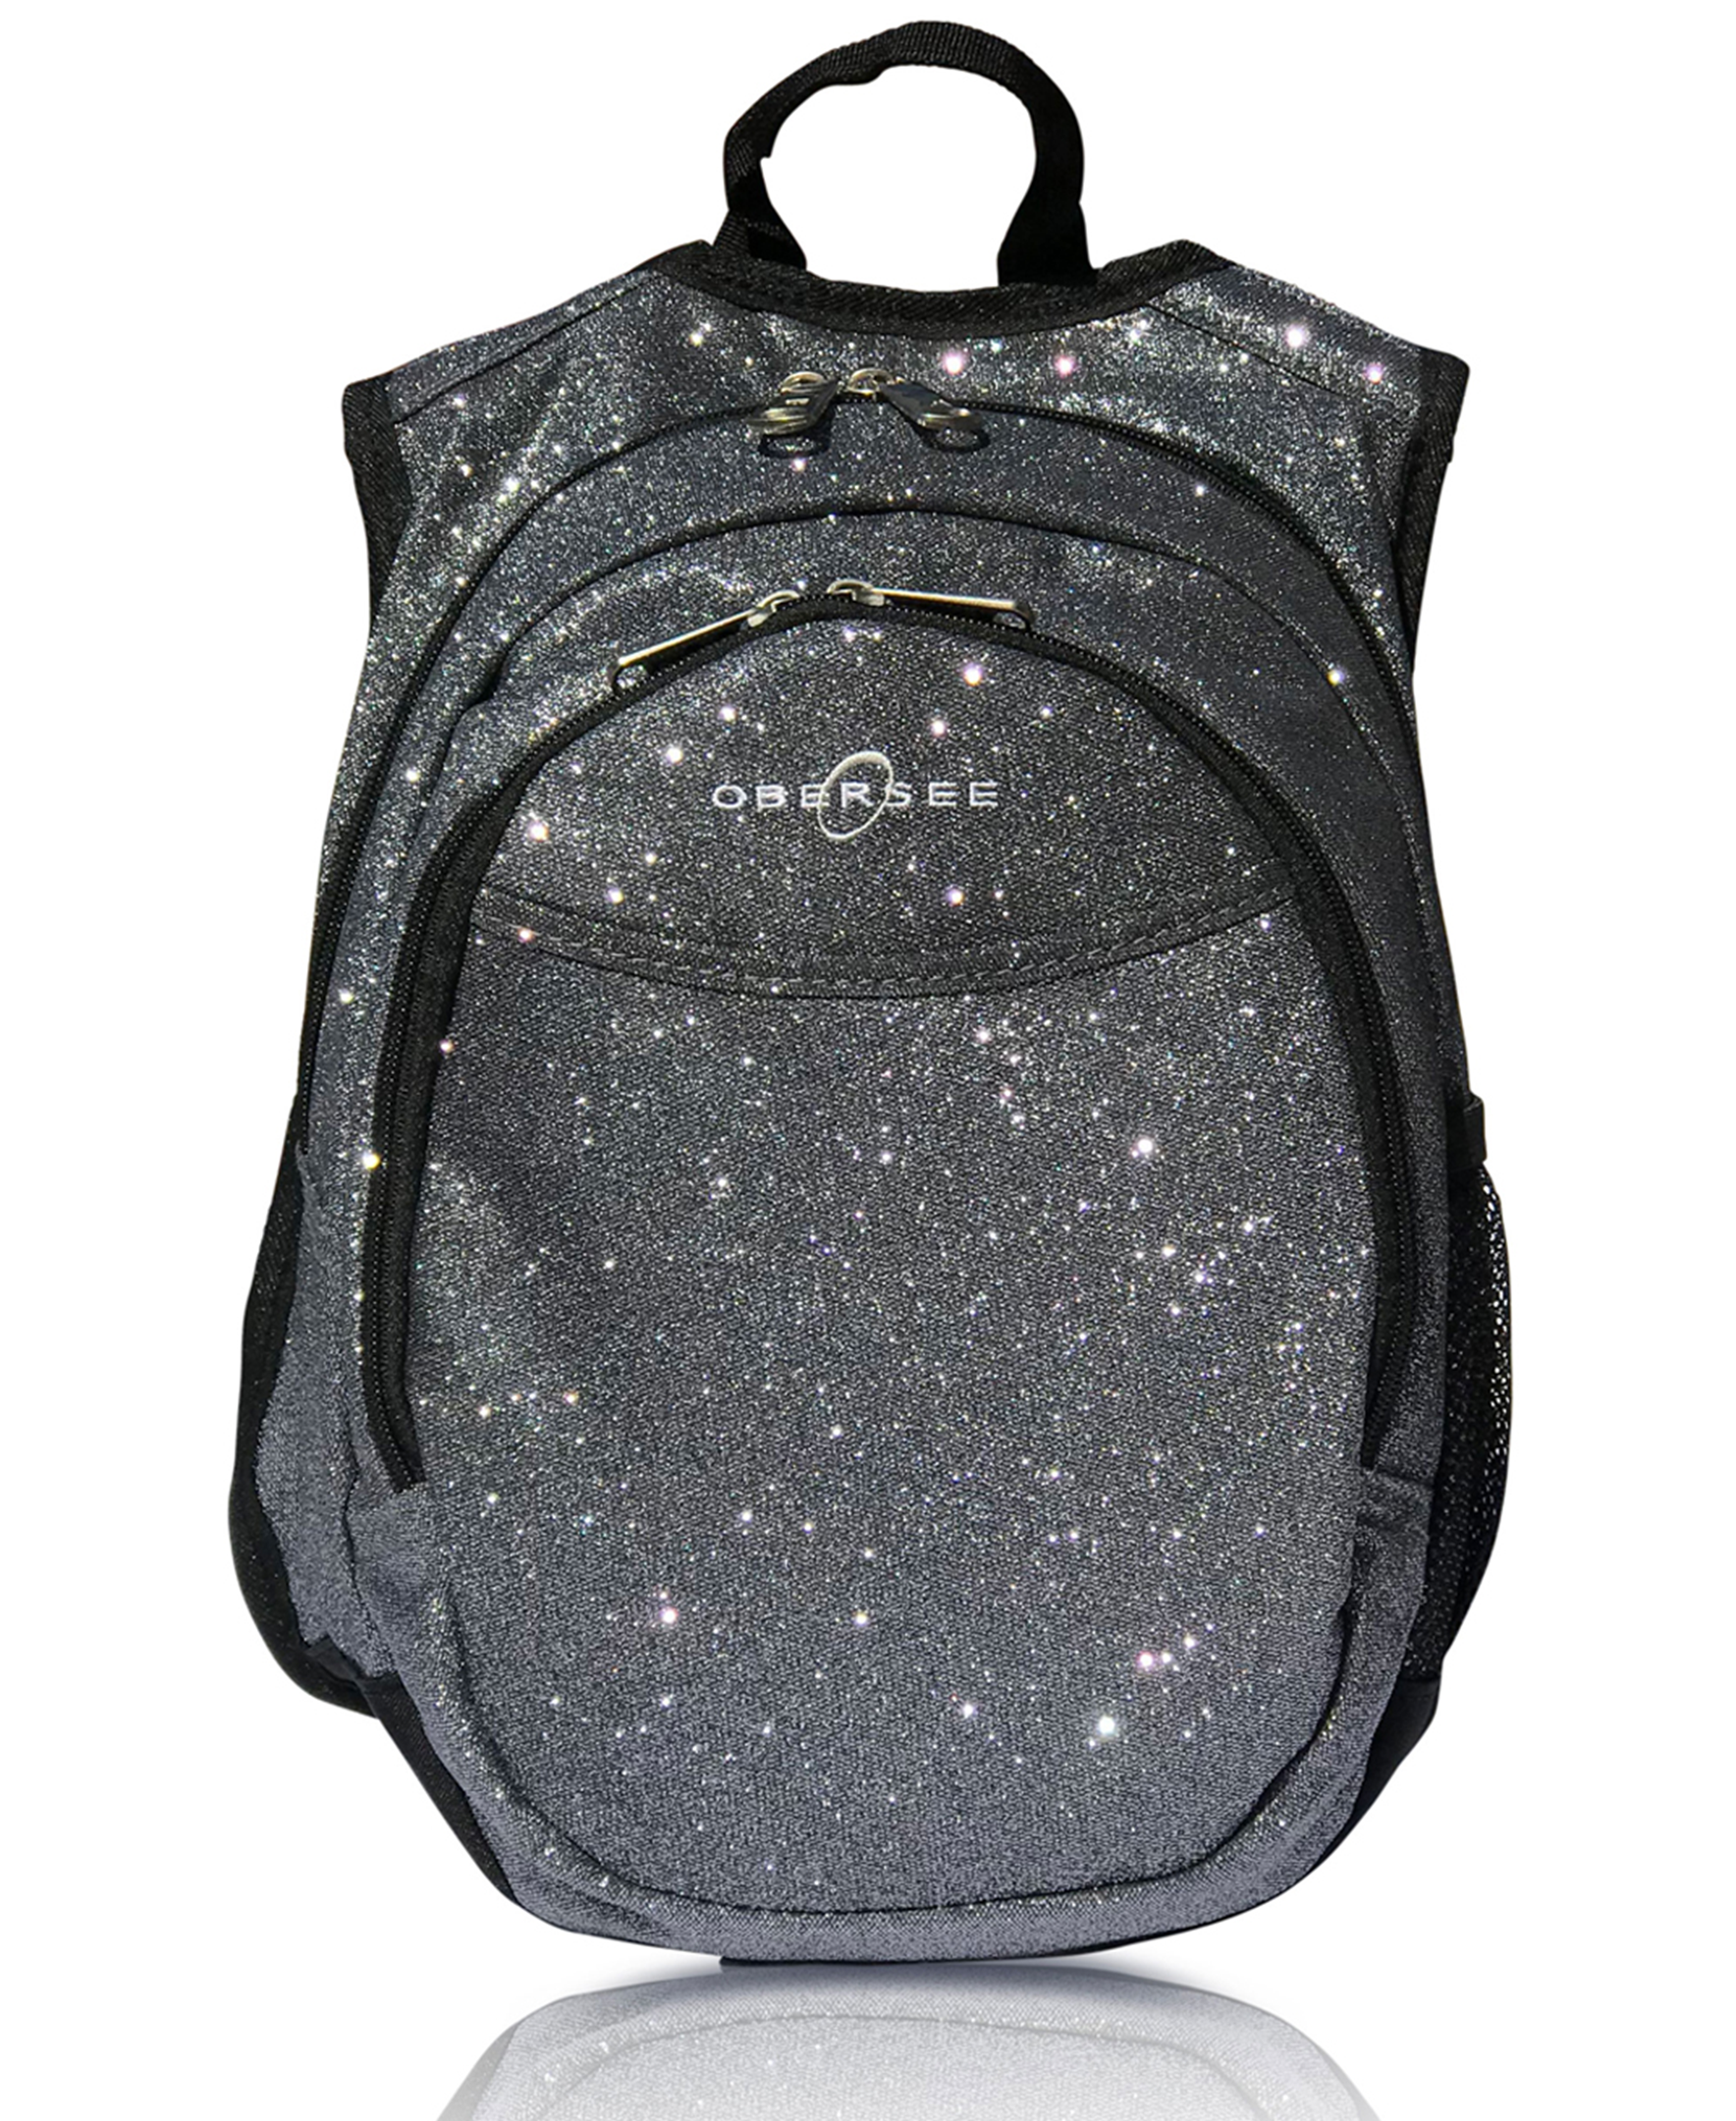 Obersee Mini Preschool Backpack for Girls with integrated Insulated Snack Cooler | Sparkle Grey Design